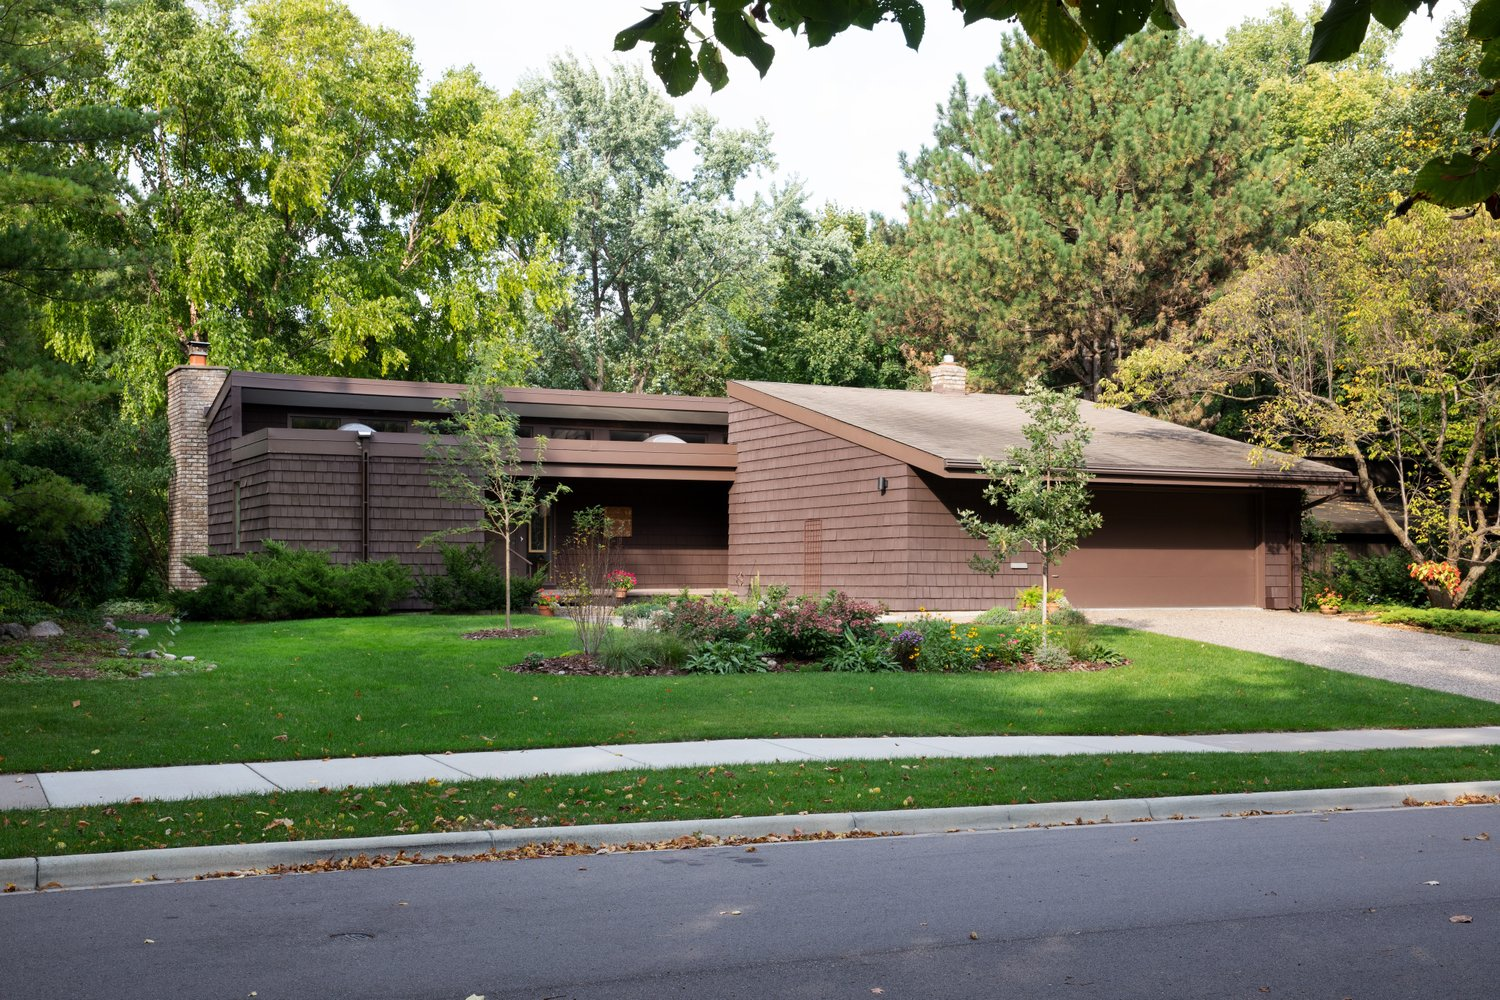 2151 Folwell Ave, designed by Tom Van Housesn,  in St. Paul, part of the Docomomo Fall Tour Day. Photo: Ben Clasen